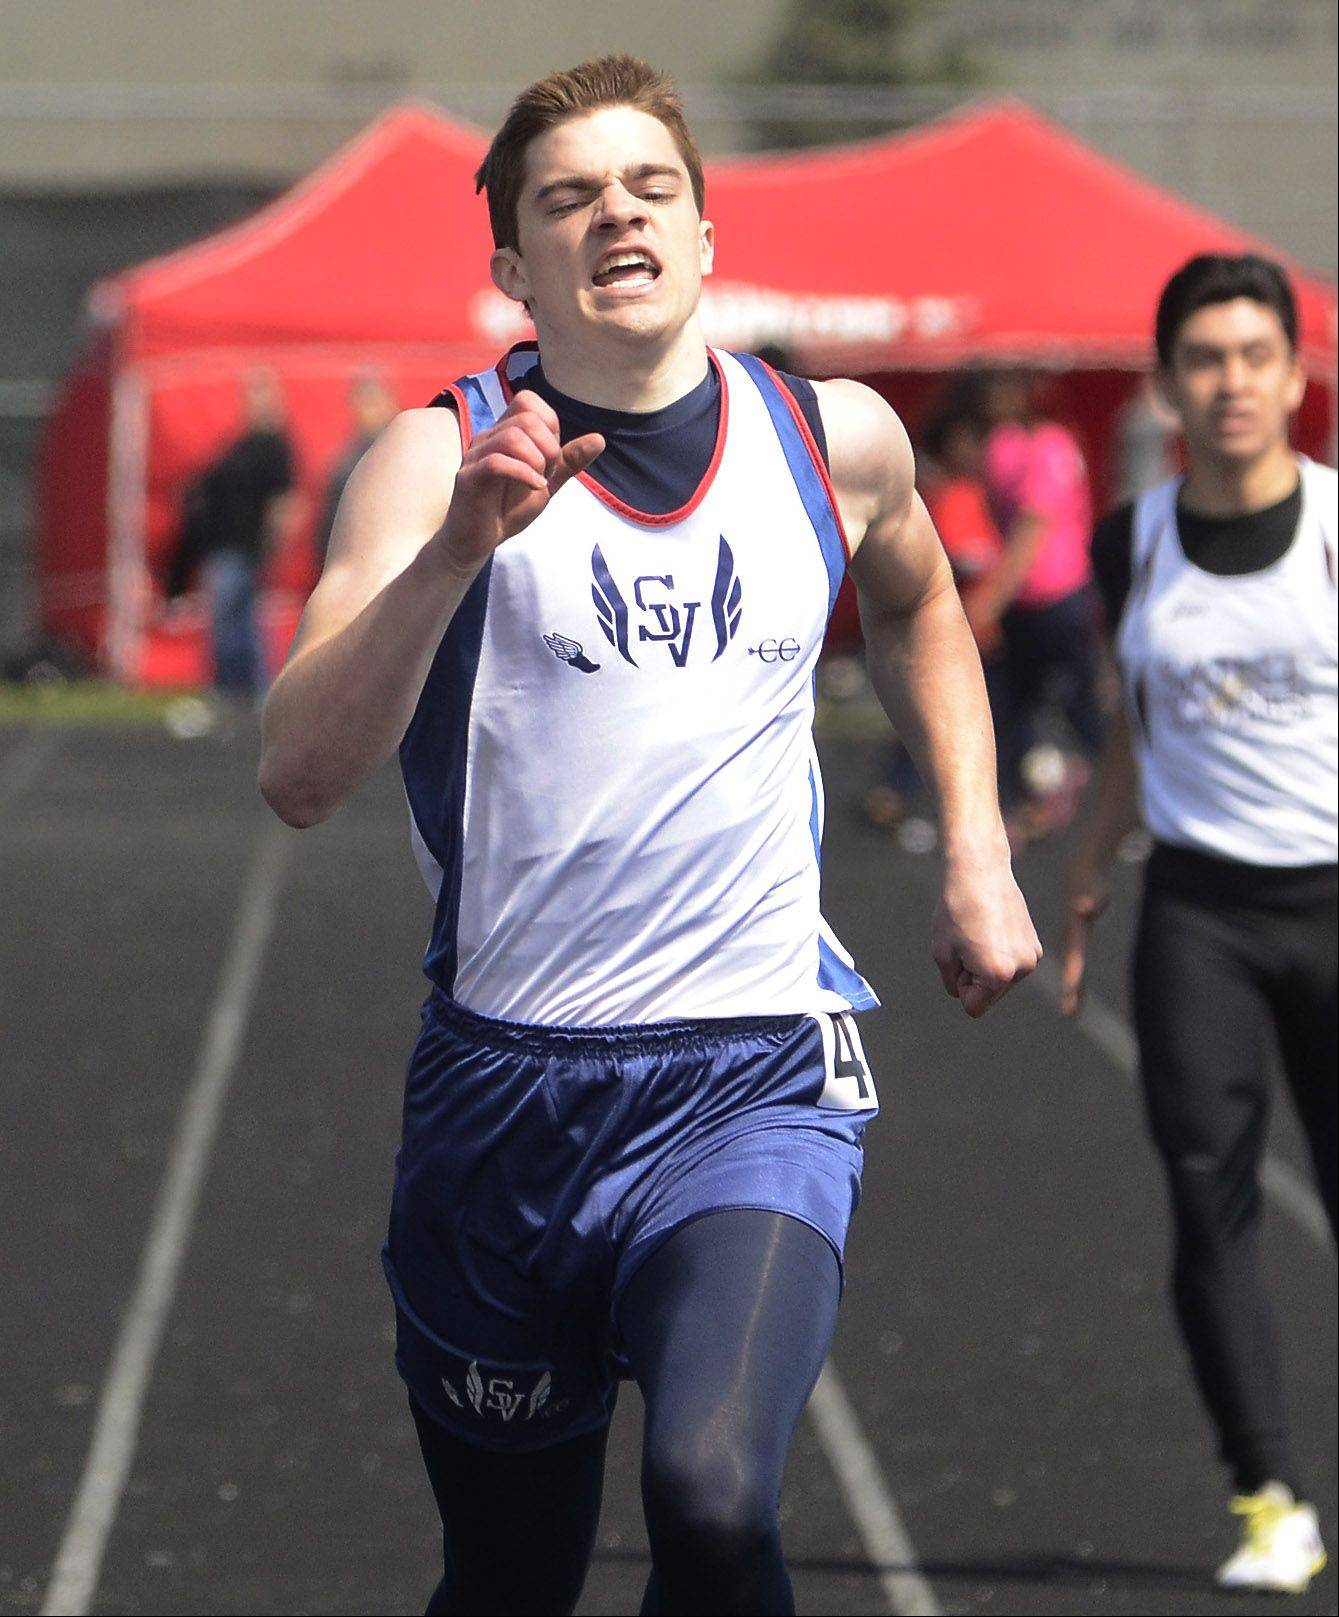 John Balas of St. Viator finishing second in his heat of the 400 dash at the Palatine Relays.